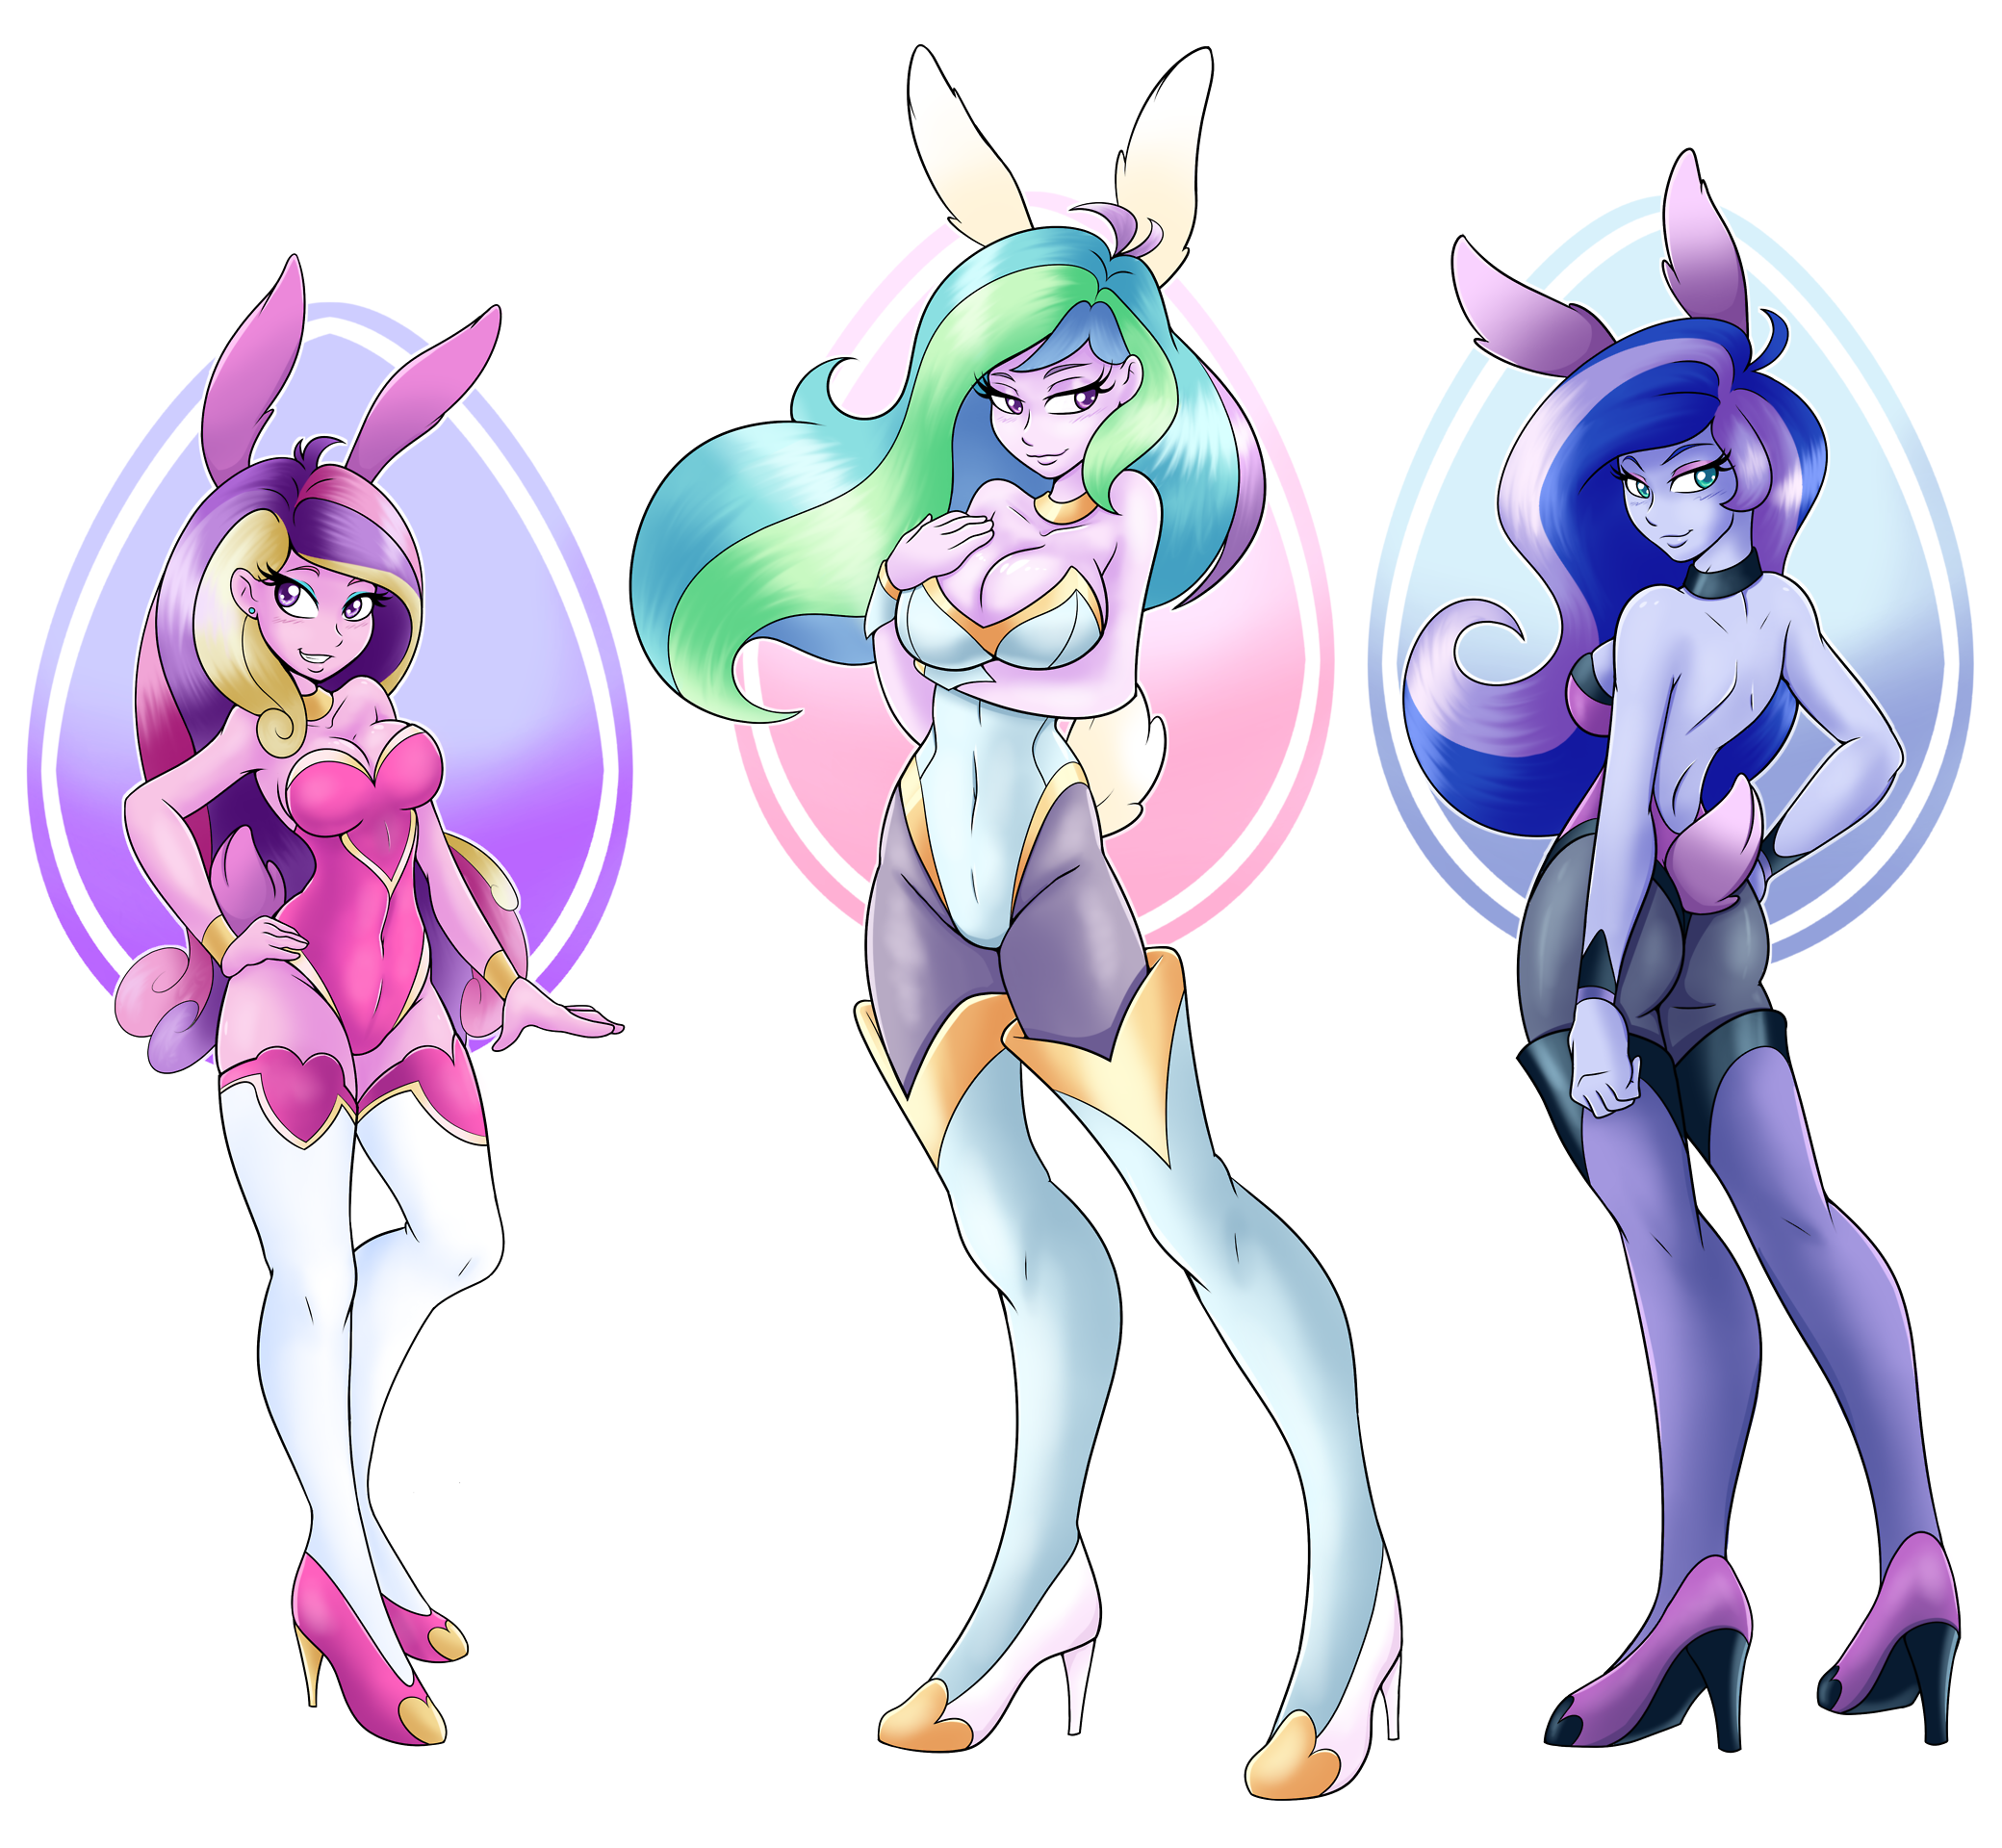 Bunny Girl Suit Busty Princess Cadance Celestia Luna Cleavage Clothes Equestria Girls Female Females Only